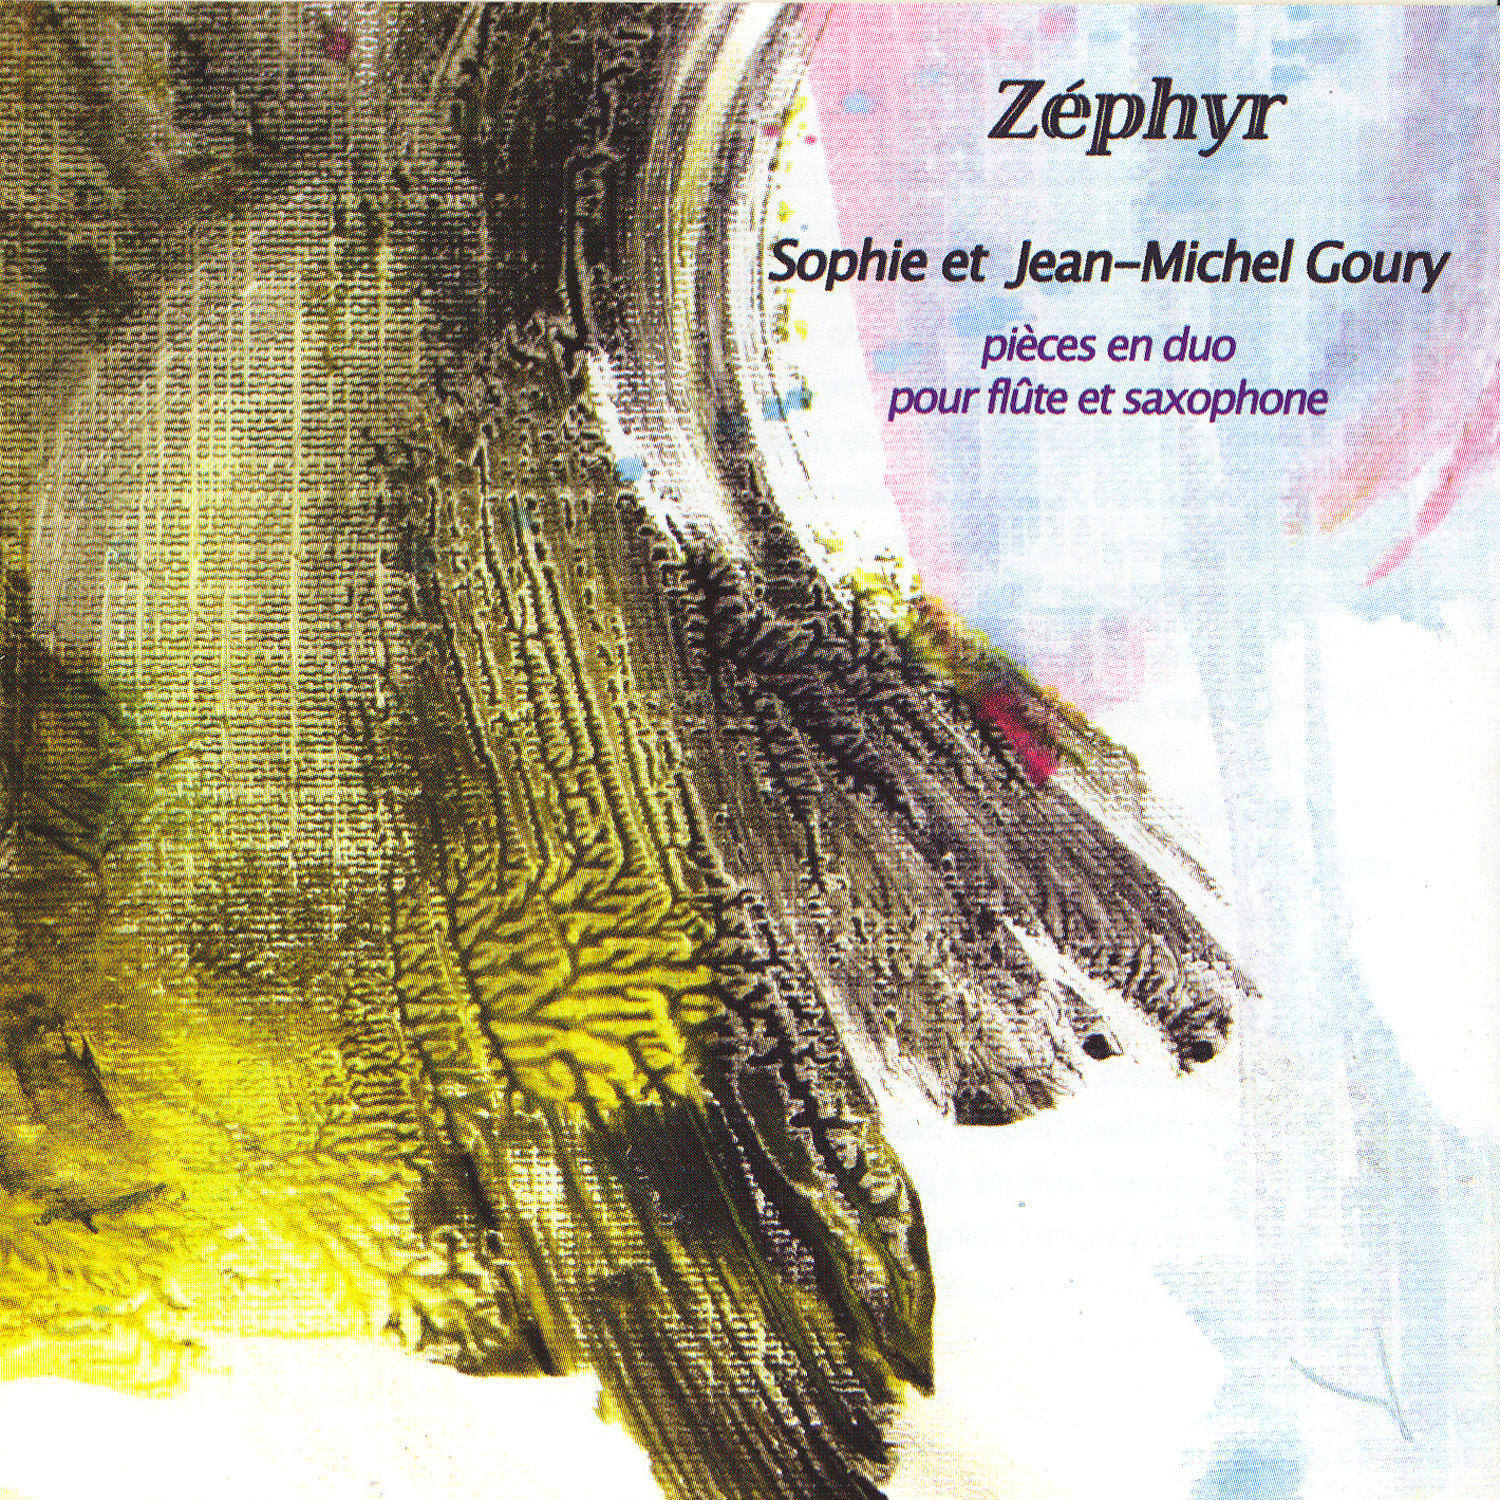 Goury CD Cover Image